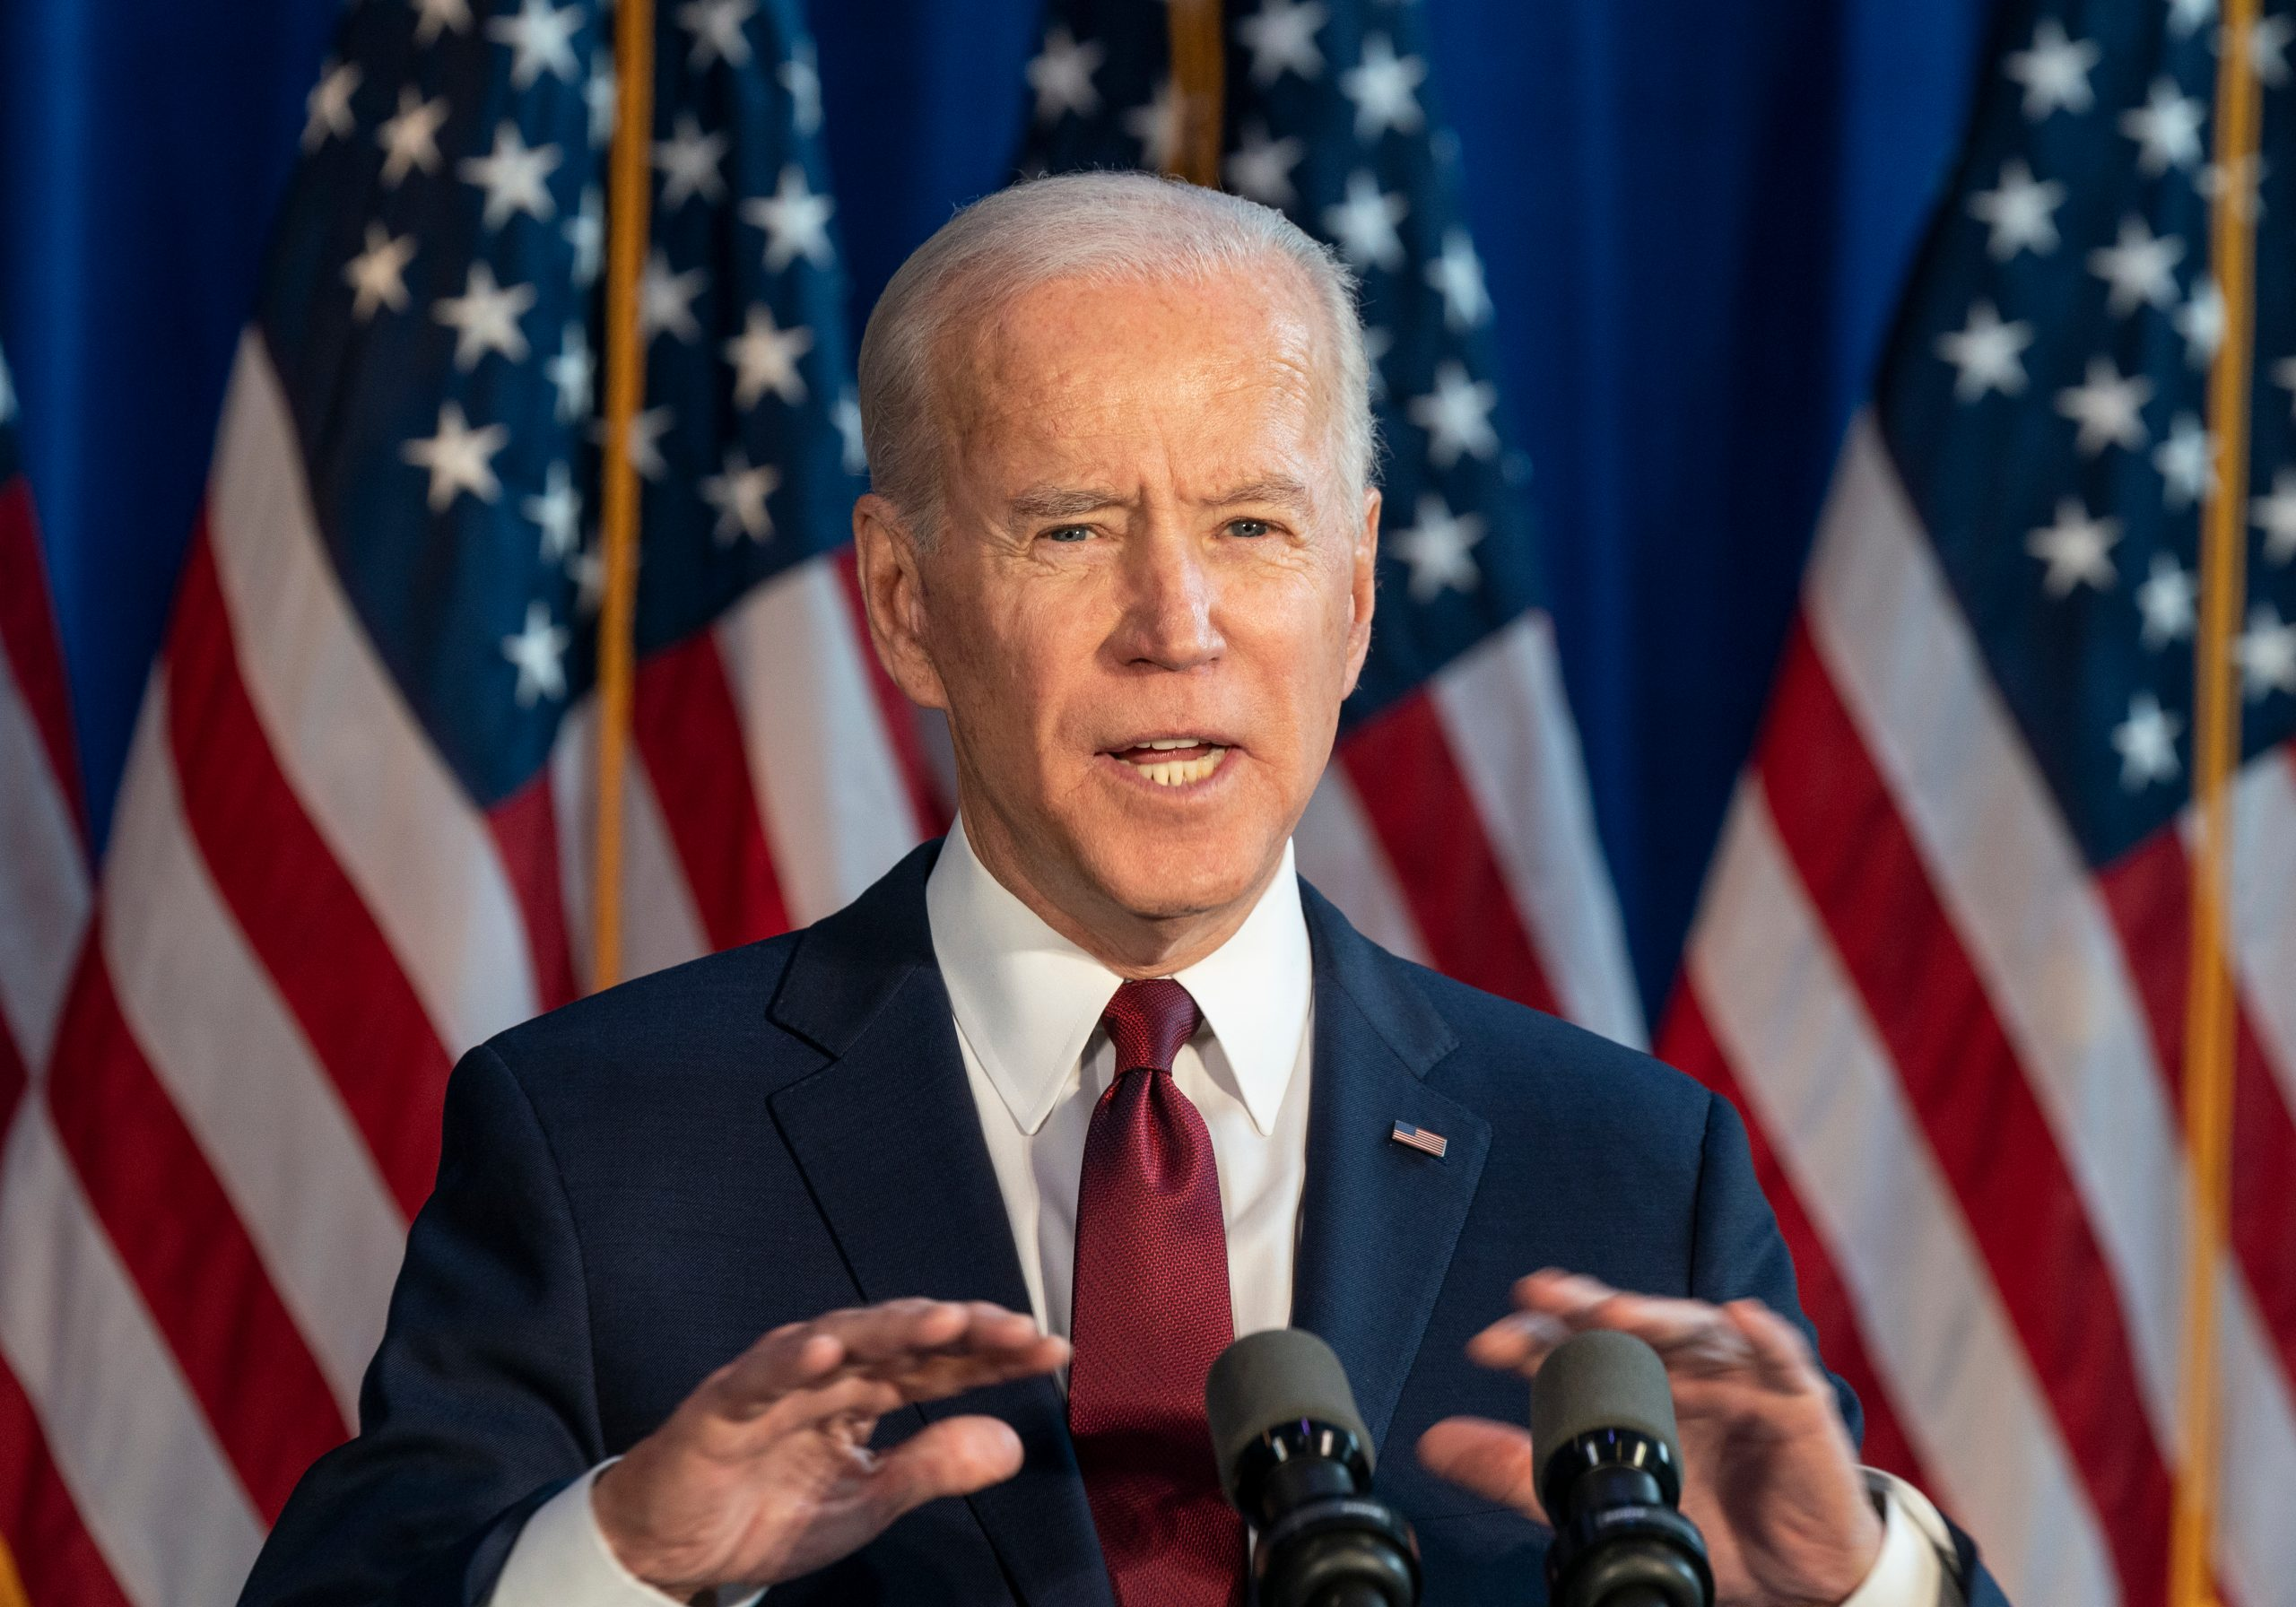 Full text of Joe Biden's inauguration speech